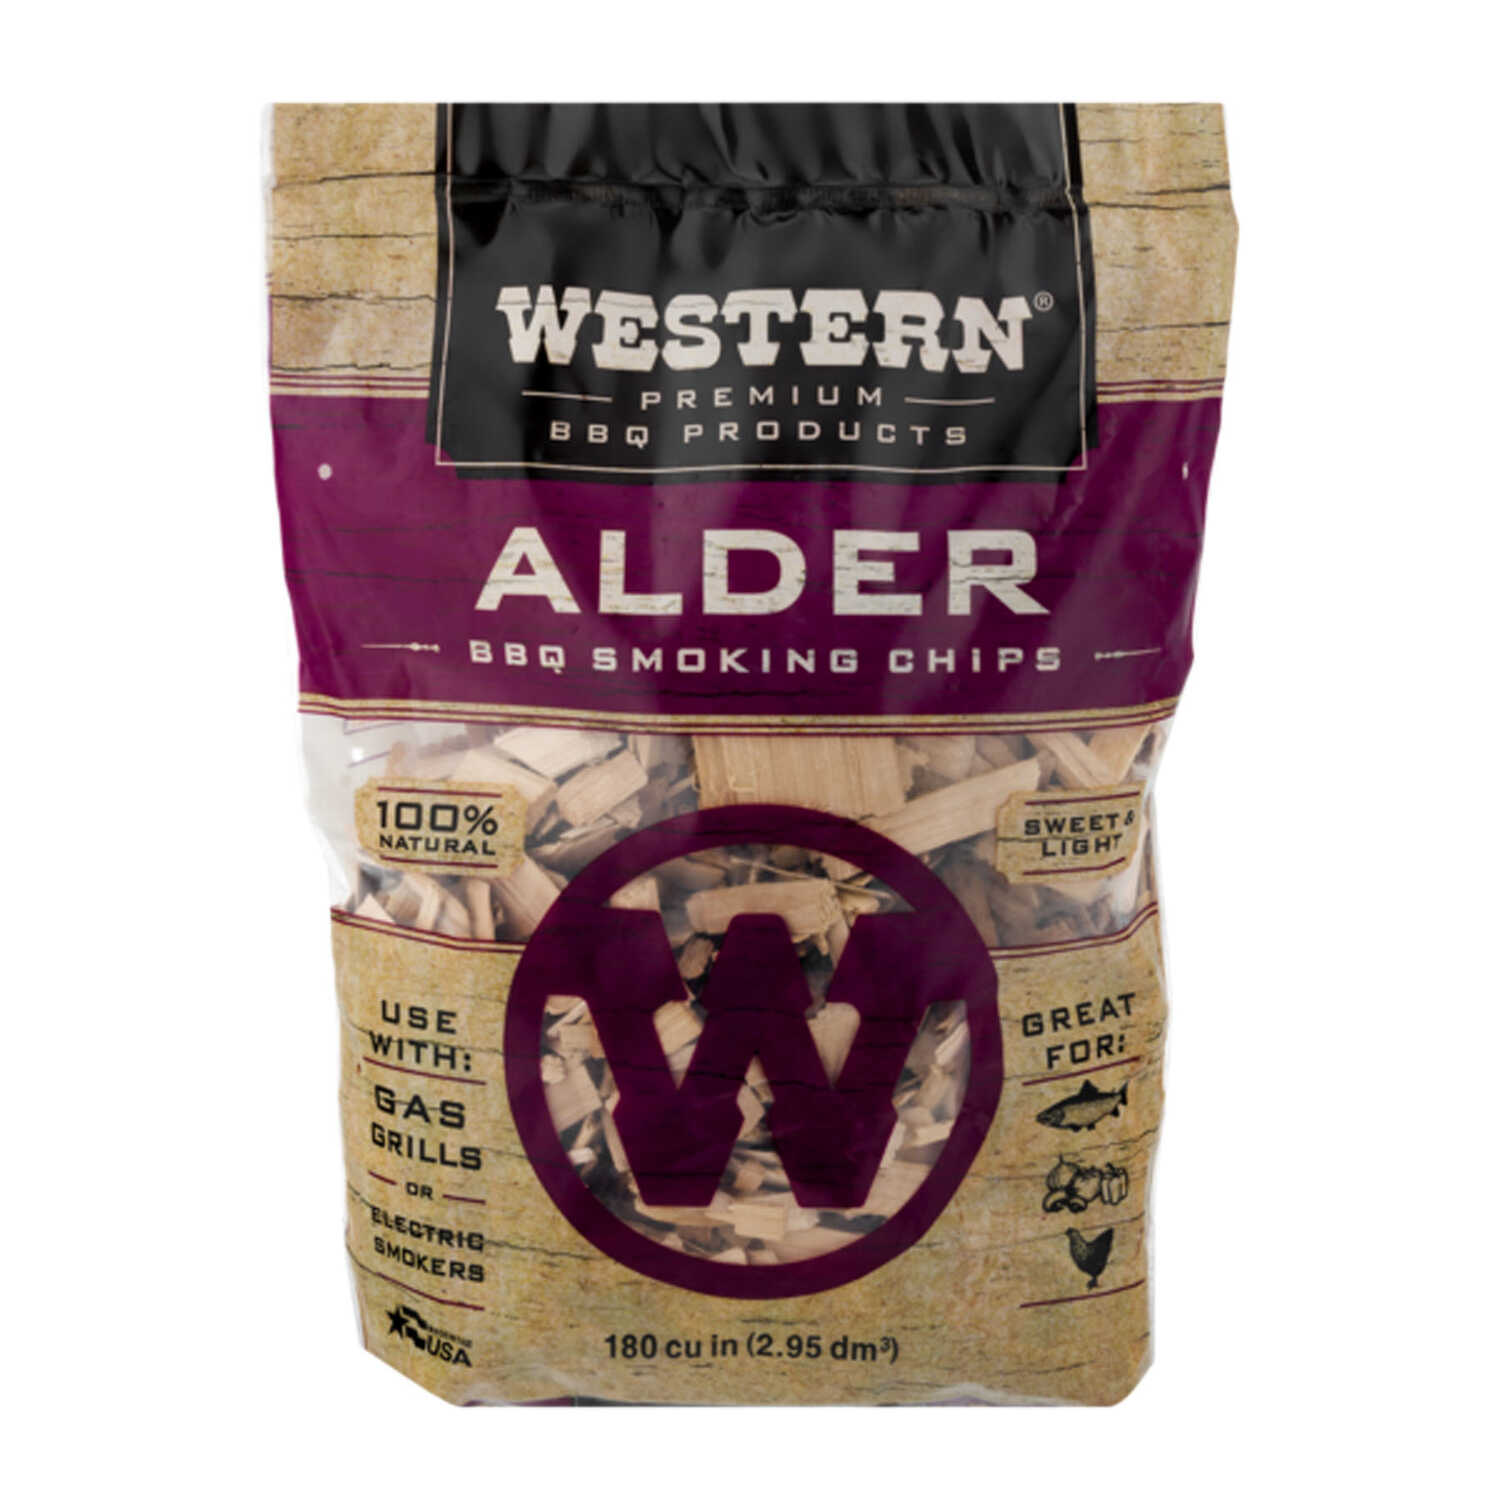 Western  Alder  Wood Smoking Chips  180 cu. in.